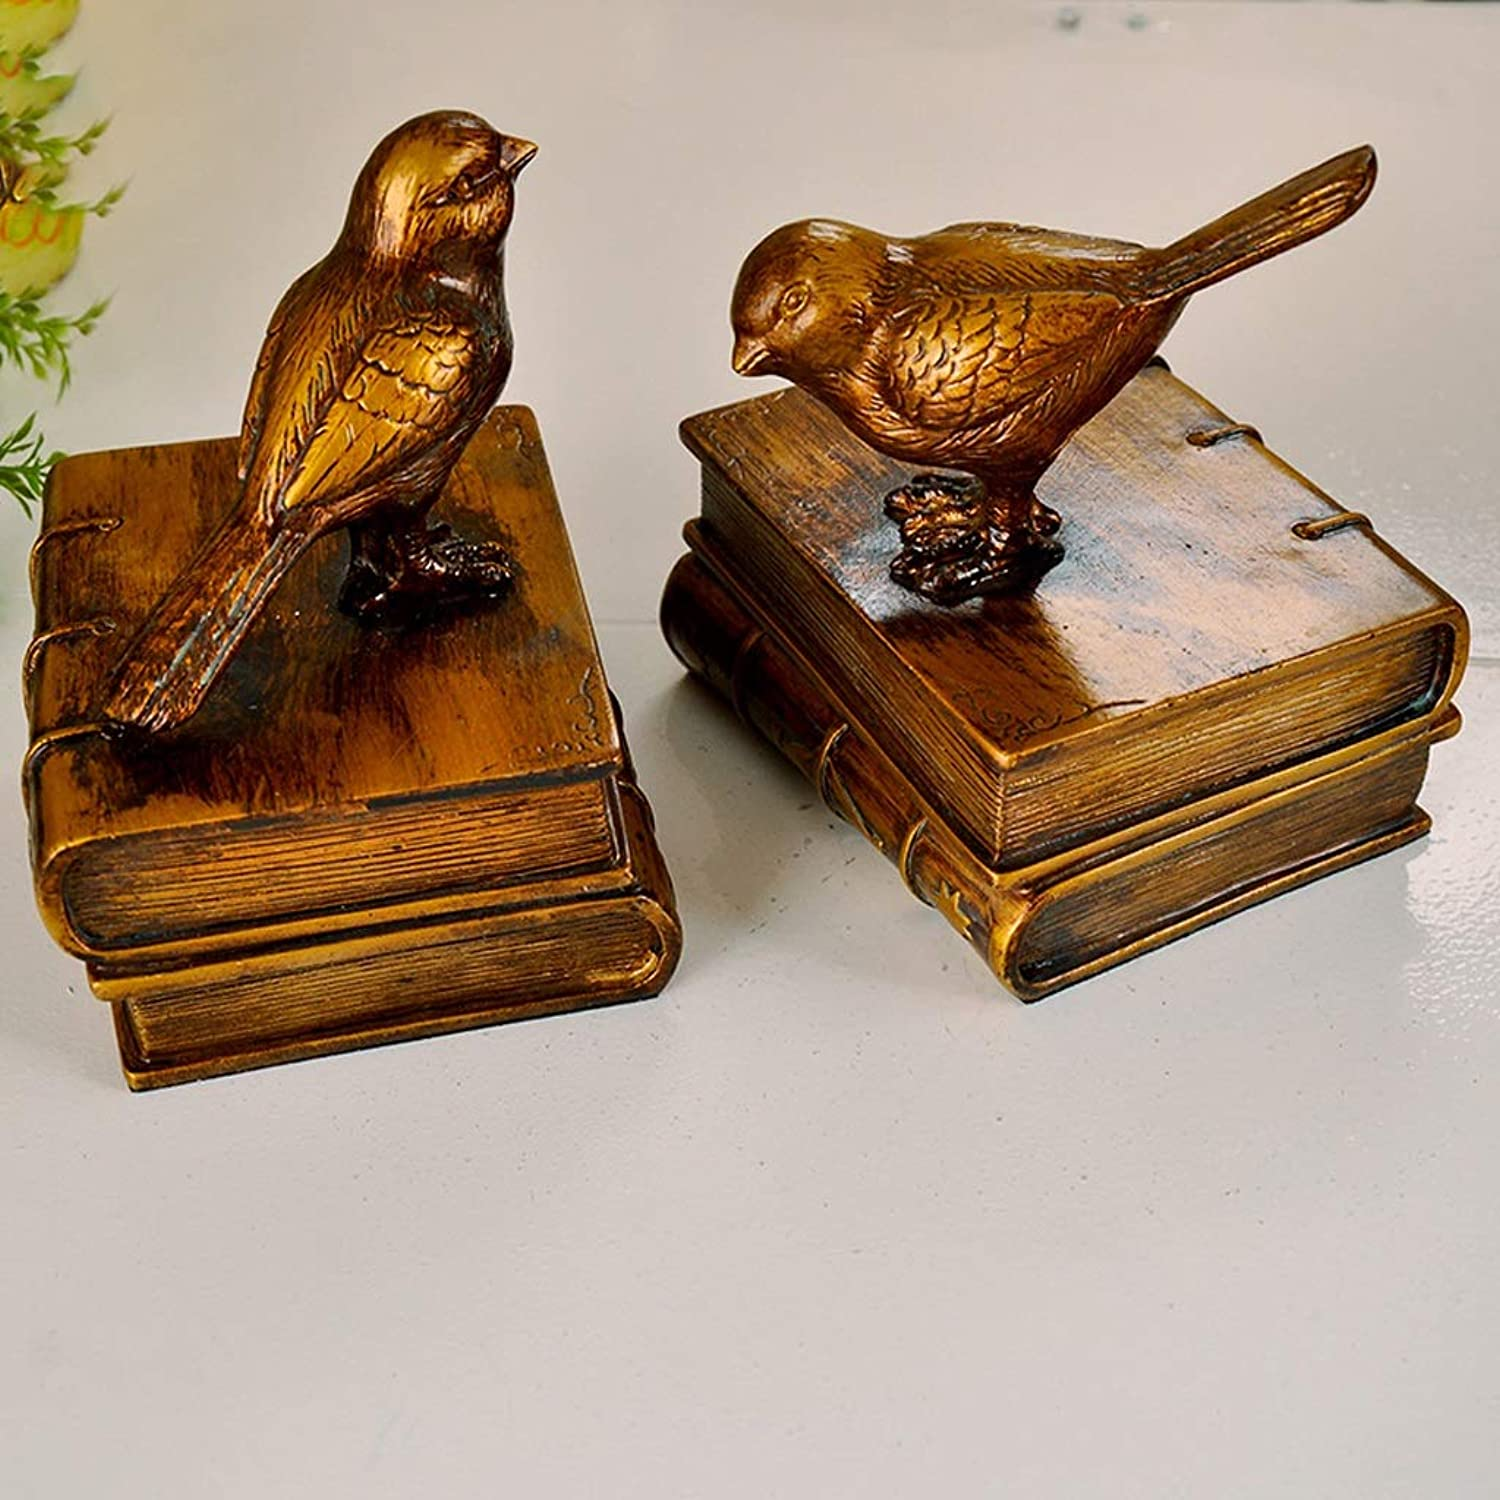 GLJJQMY Vintage Antique Copper Bird Bookend Decorations Decorative Bedroom Room Counter Desk Personalized Practical Ornaments 13.2x10.5x15.5cm Bookcase